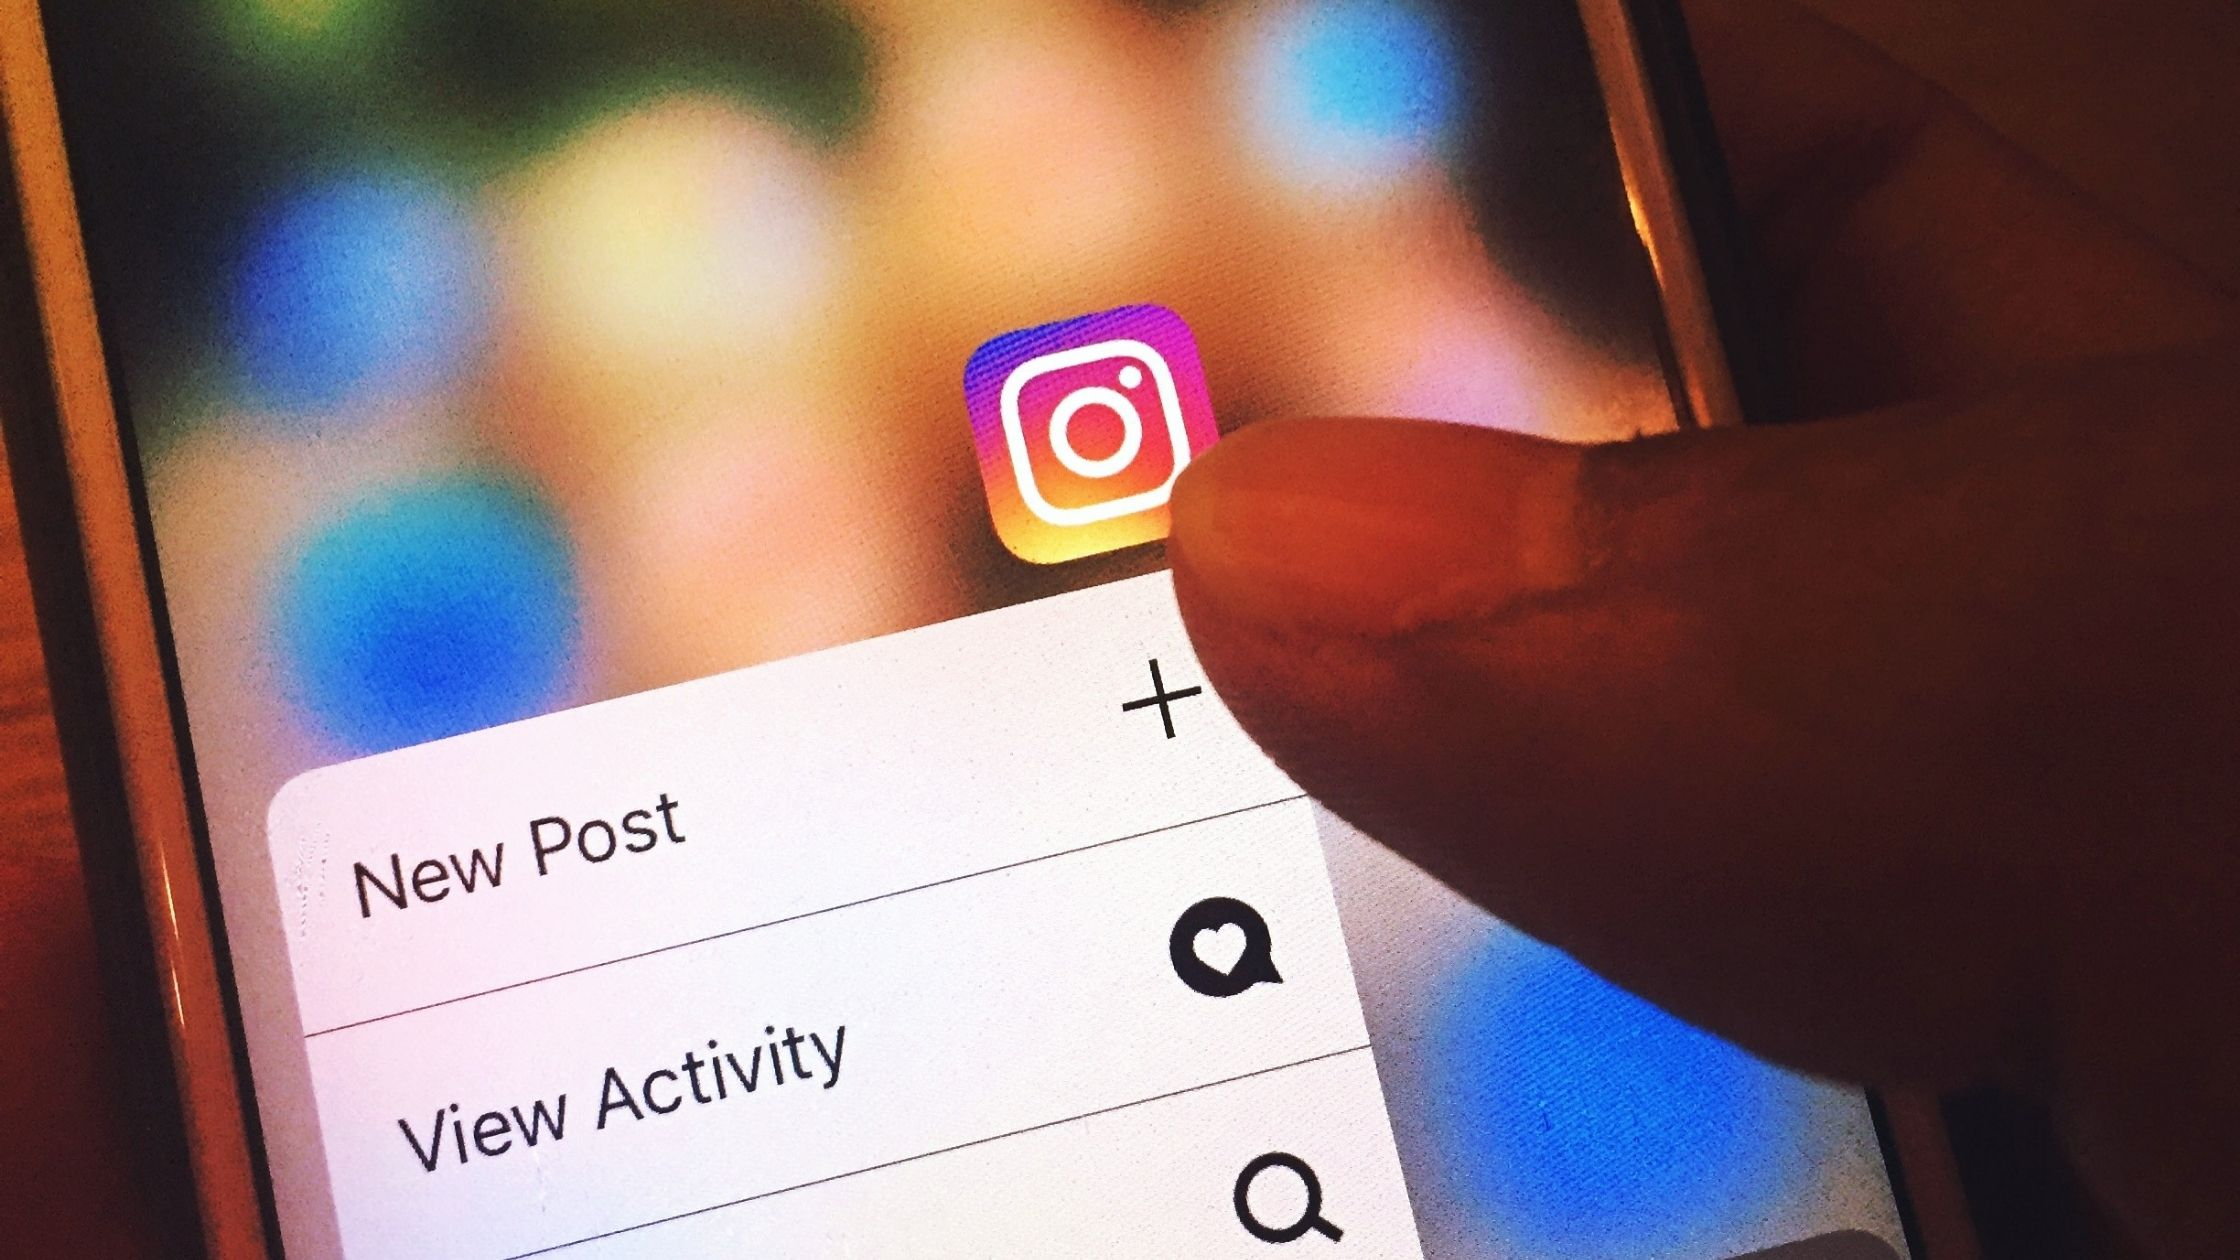 Instantly Improve Your Instagram: Tips for Growth and Engagement